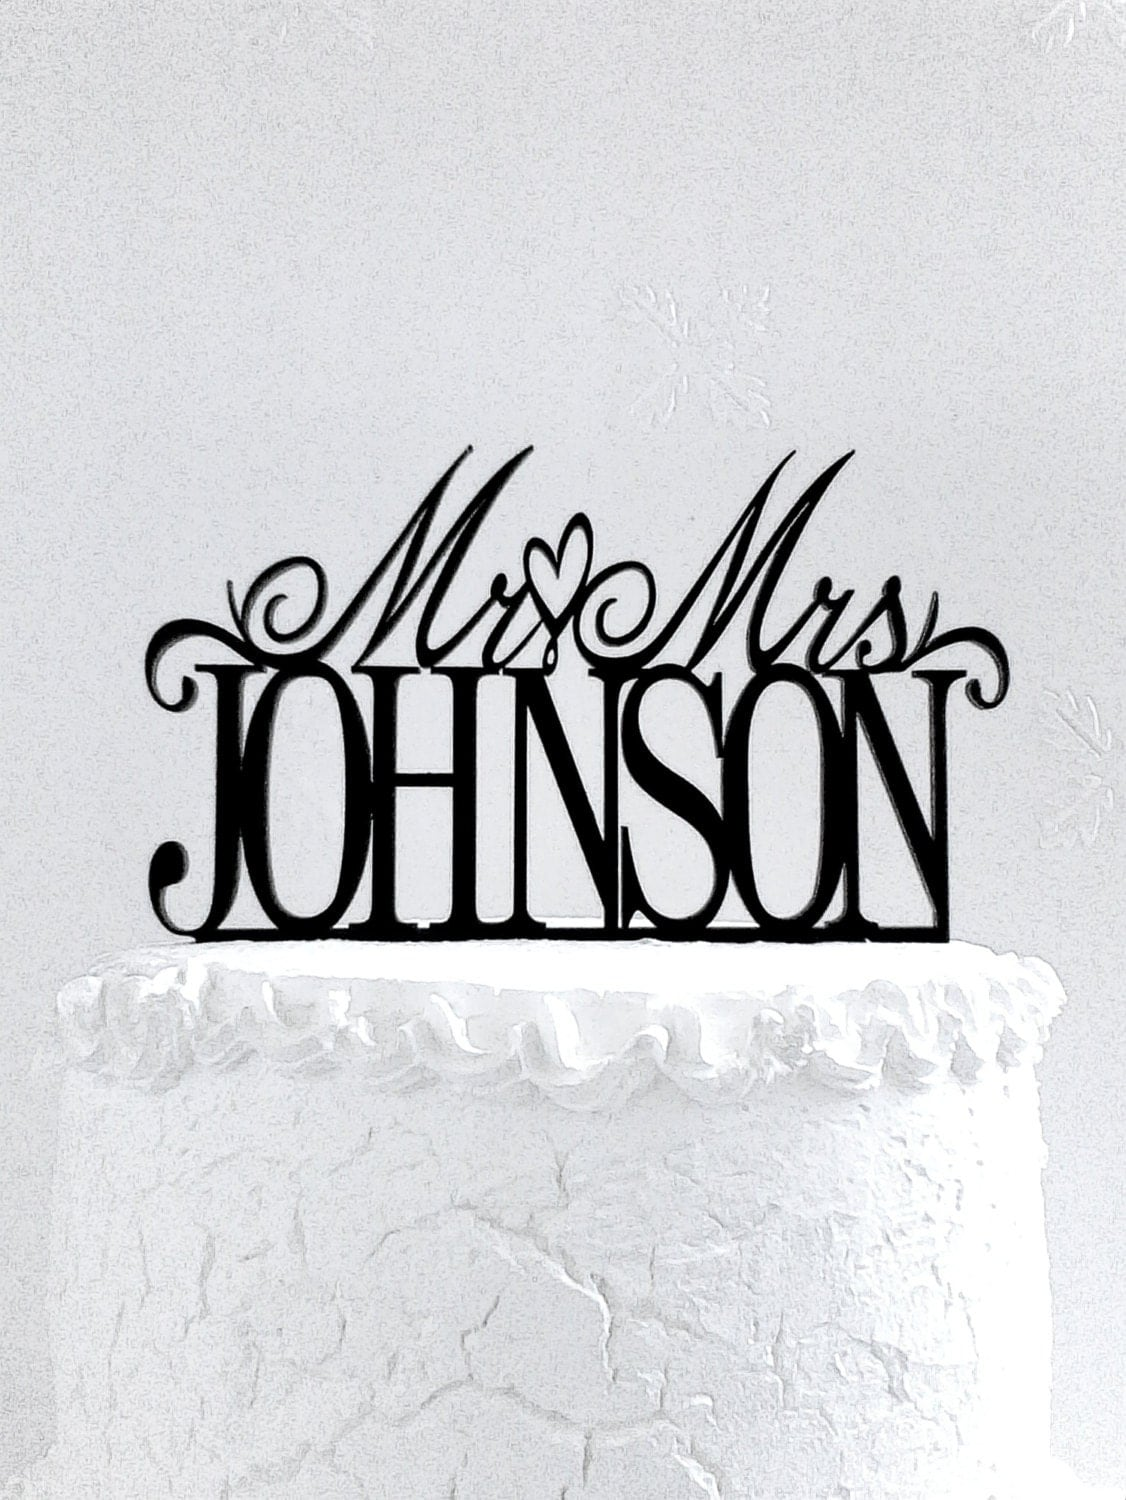 Mr And Mrs Johnson Wedding Cake Topper Personalized With Last